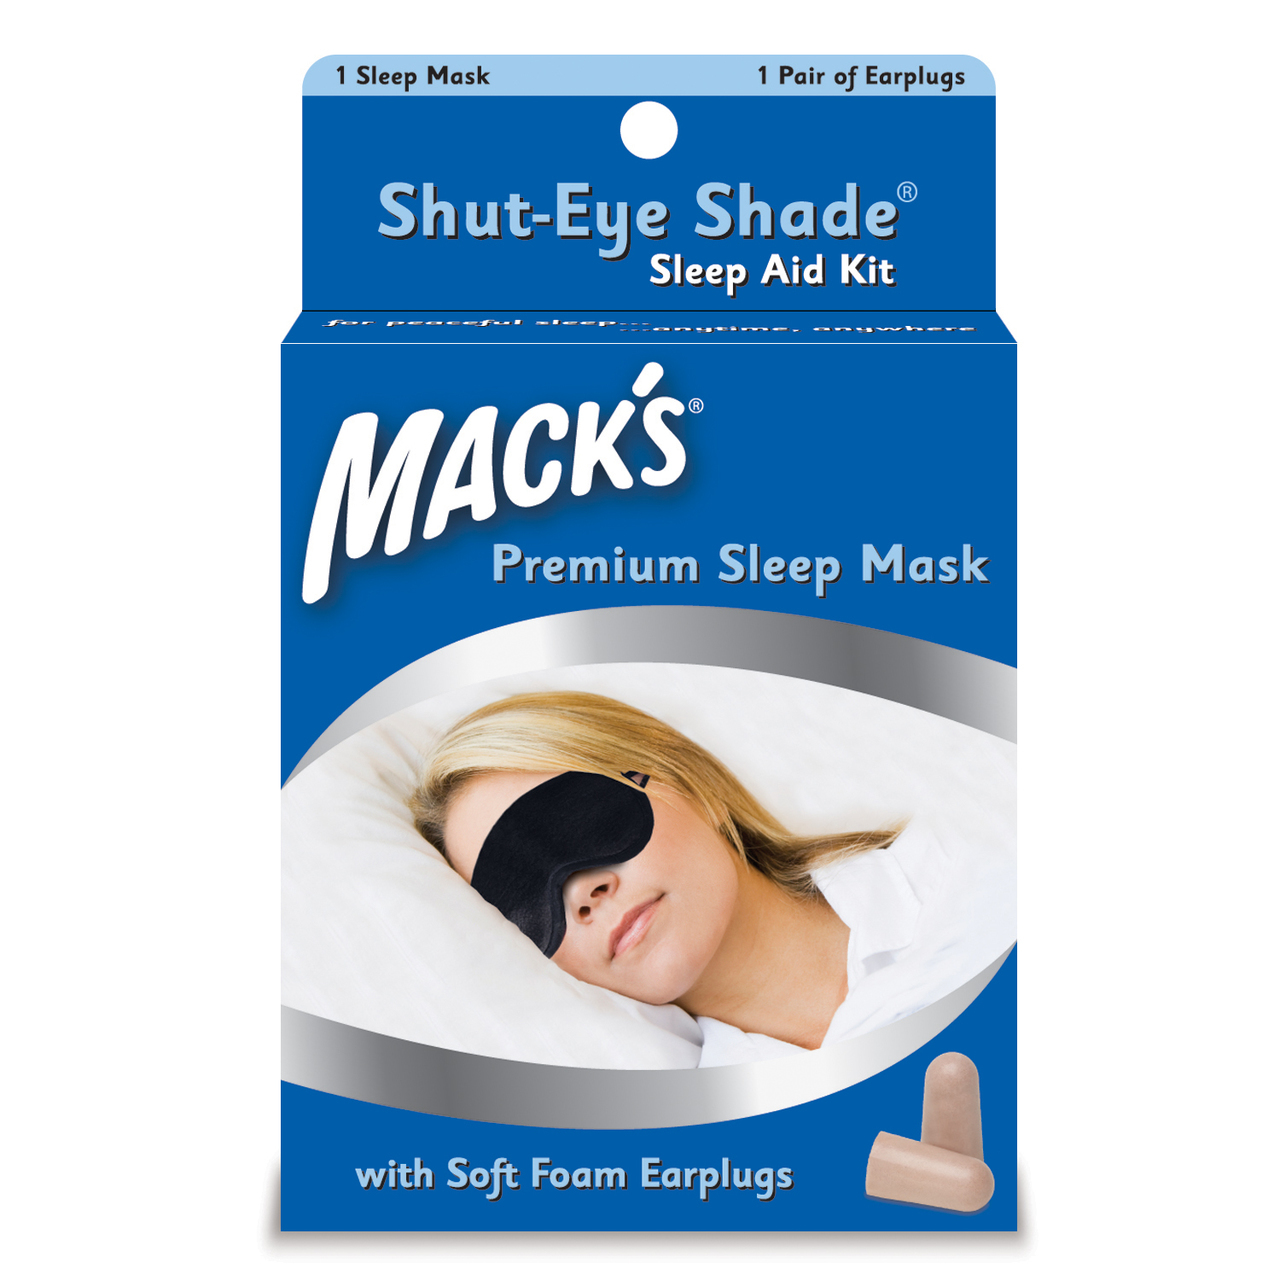 Macks Shut Eye Shade - Sleep Aid Kit